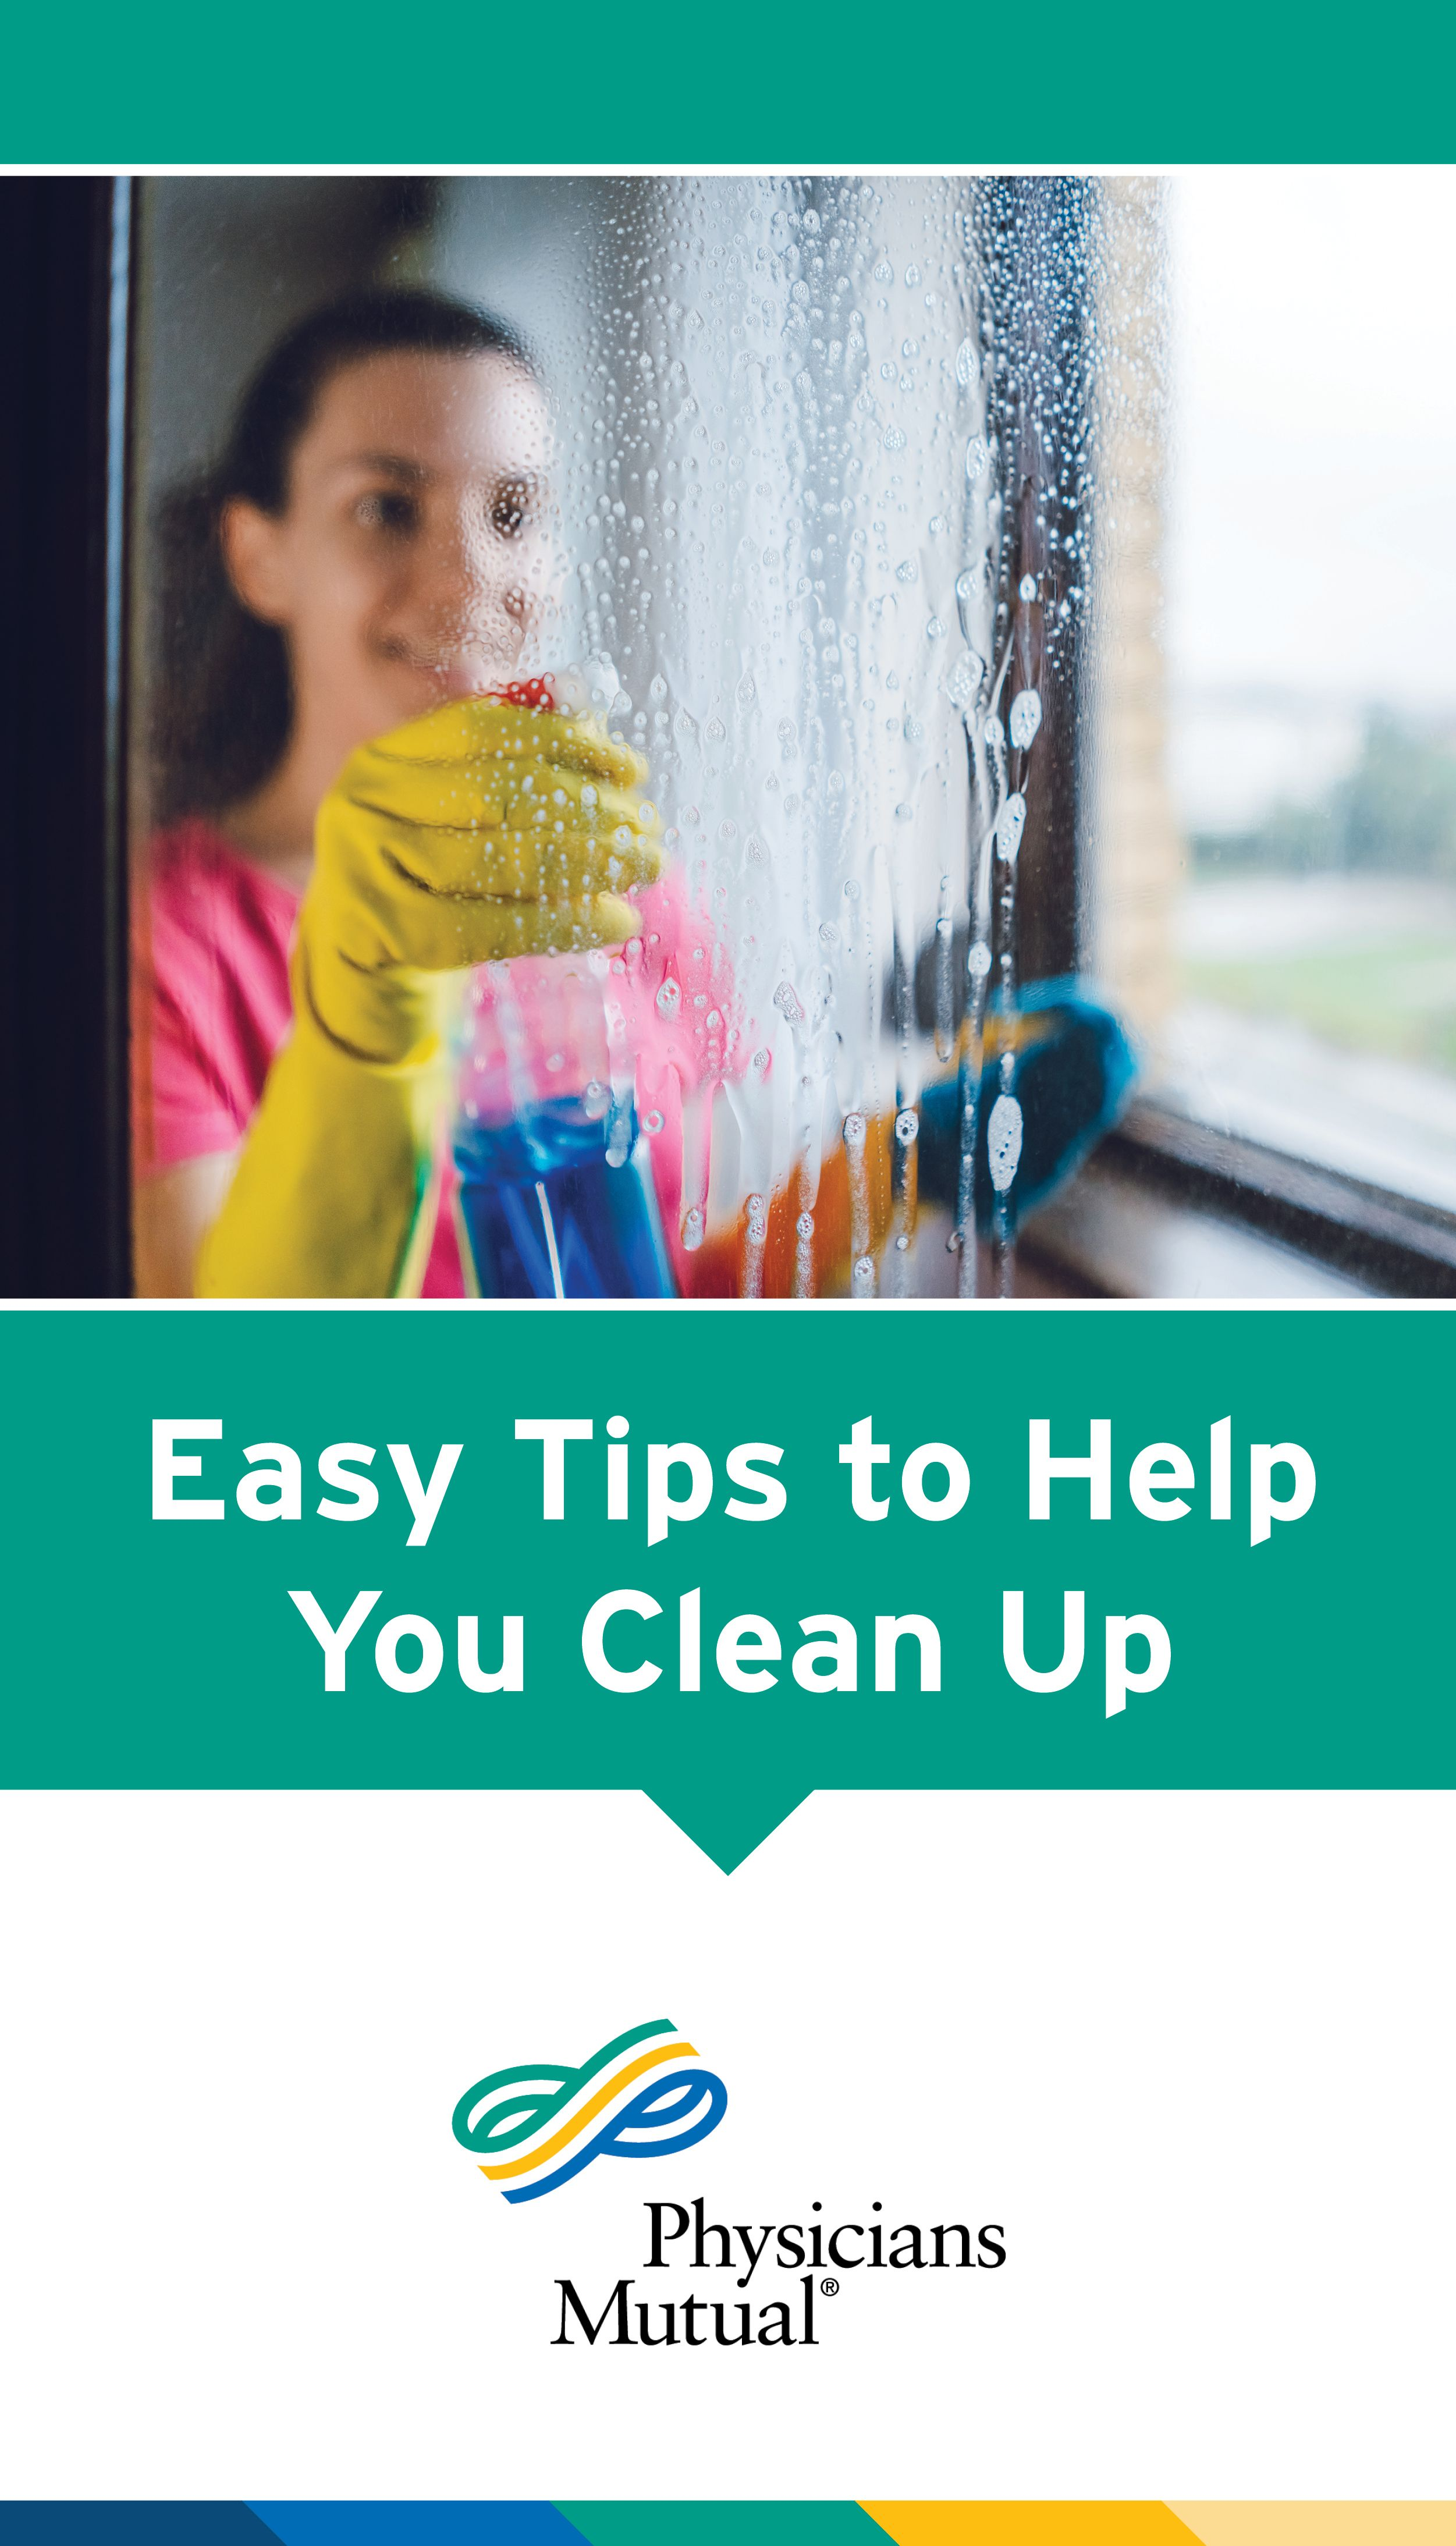 Conversations: Easy housekeeping tips to help you save money